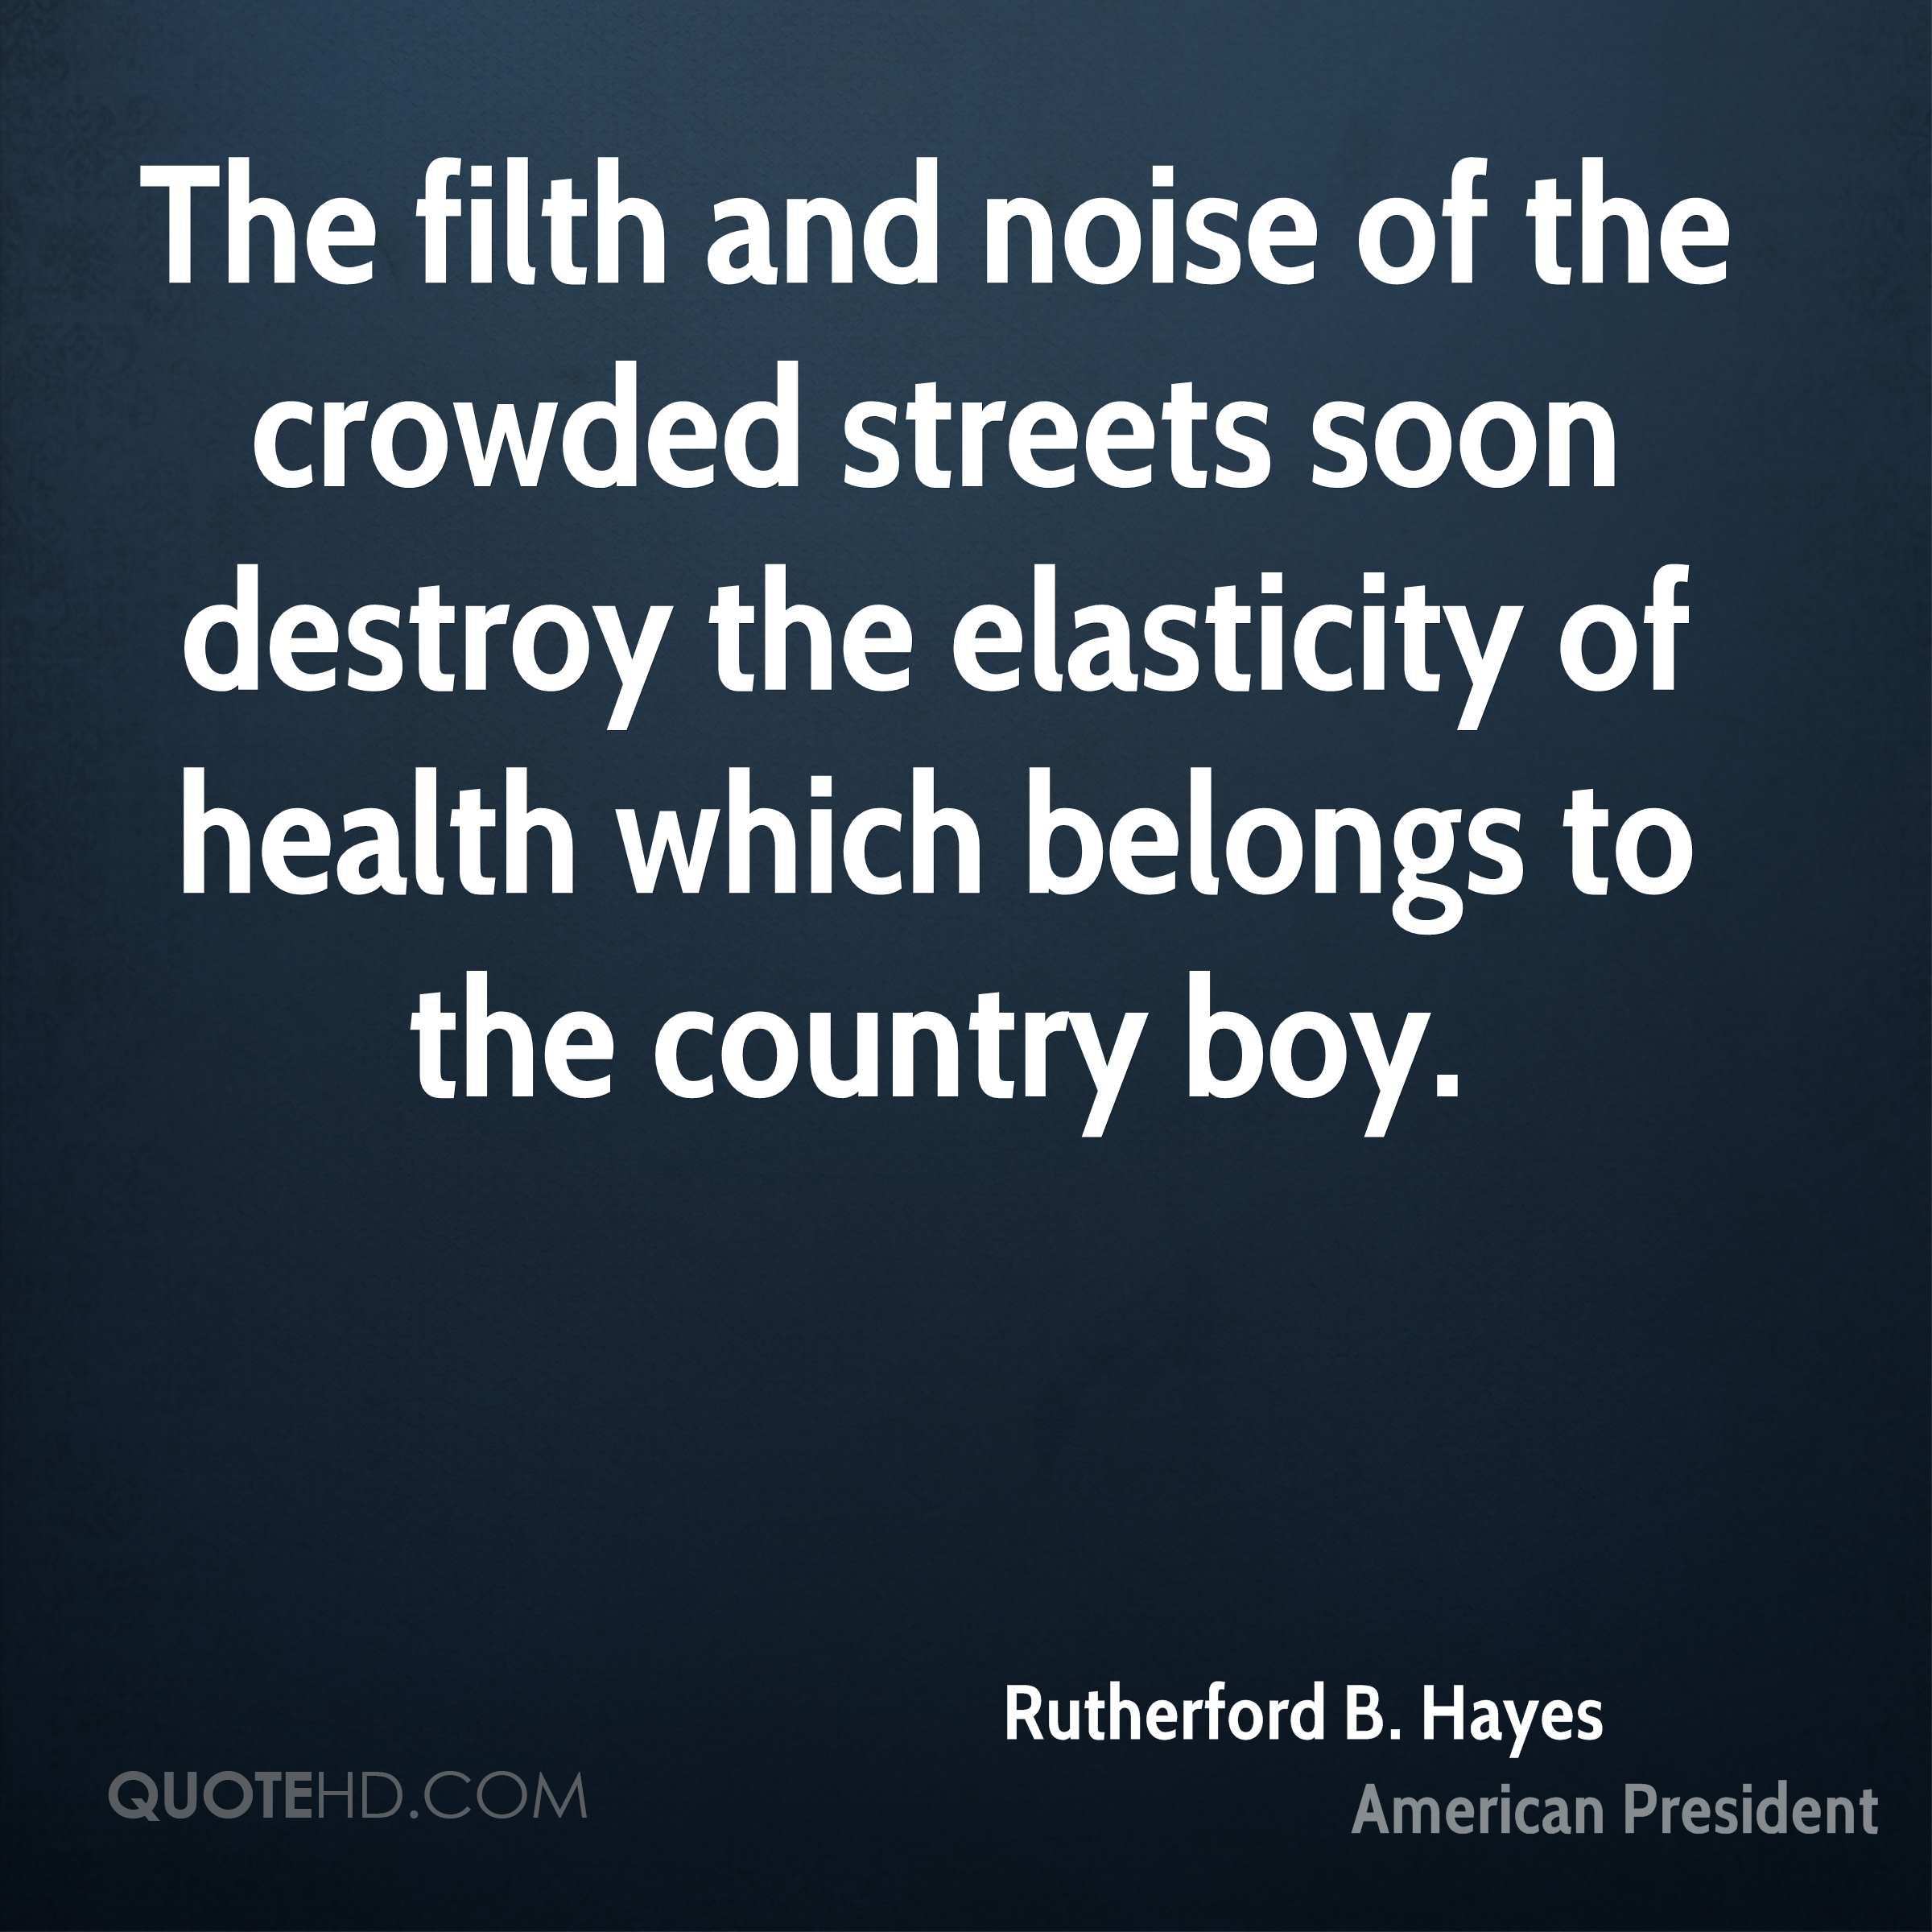 The filth and noise of the crowded streets soon destroy the elasticity of health which belongs to the country boy.